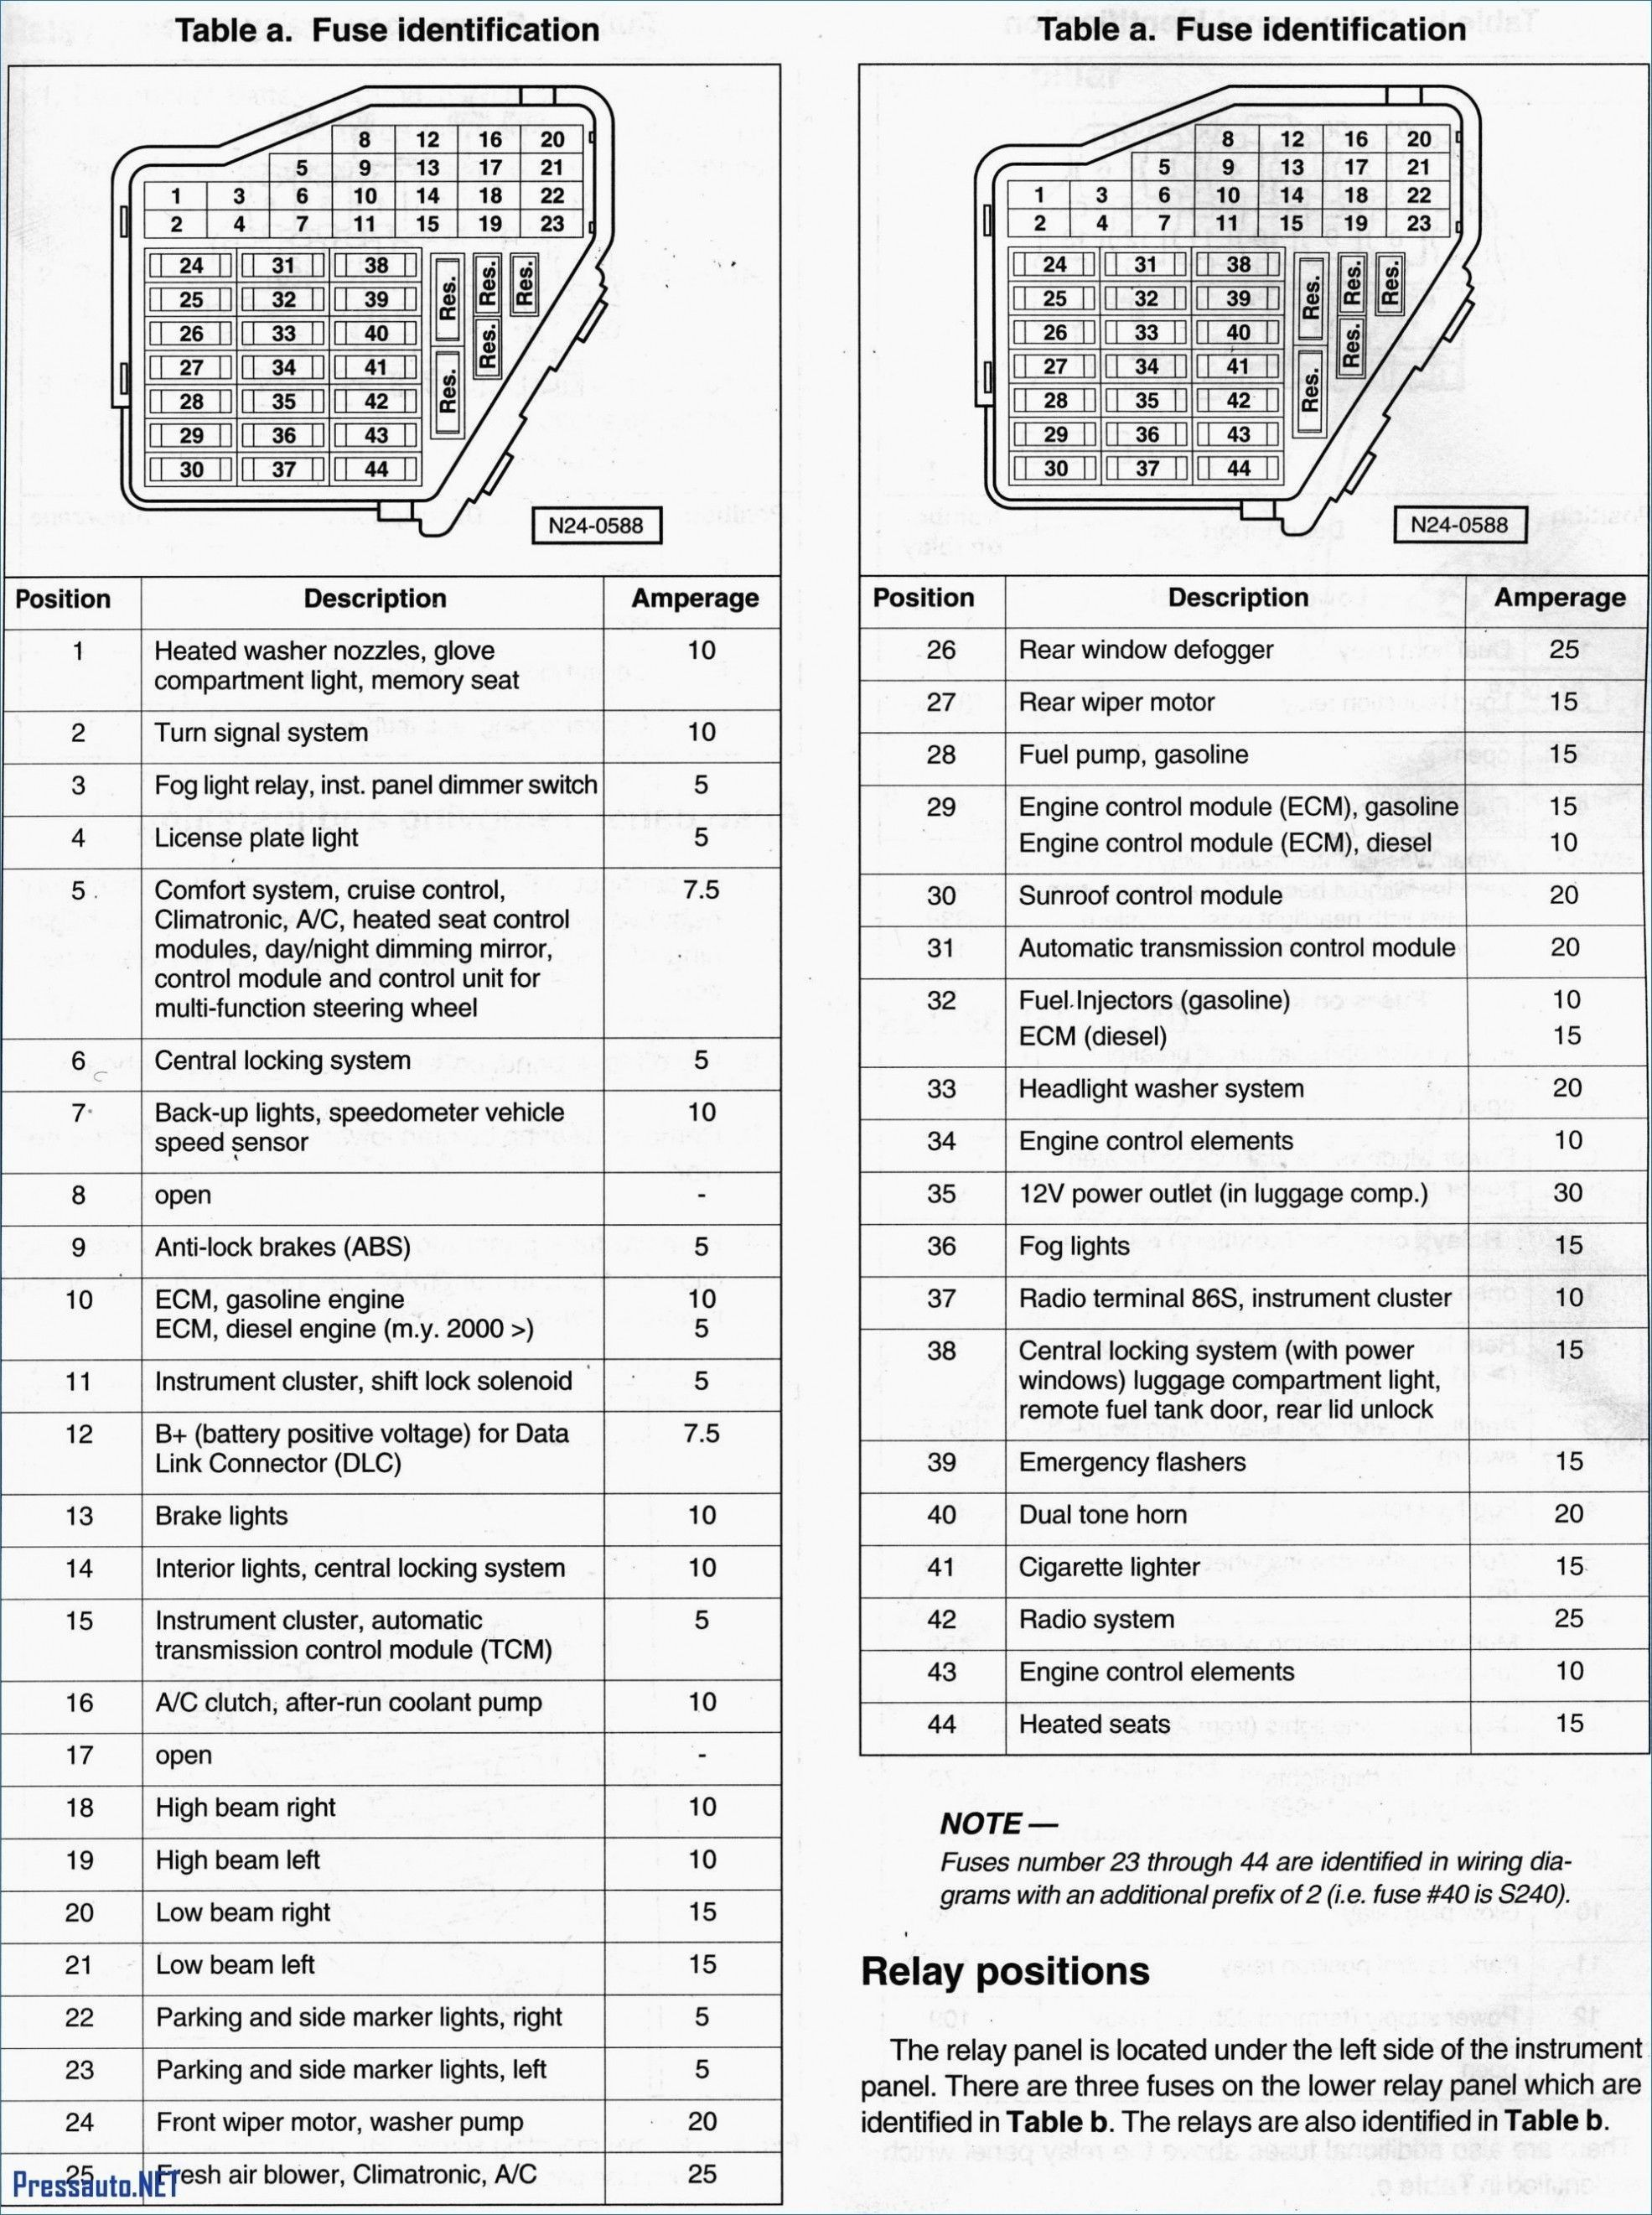 New 1998 Audi A4 Radio Wiring Diagram | Car fuses, Vw mk4, Fuse box | 1998 Audi A4 Wiring Diagram |  | Pinterest